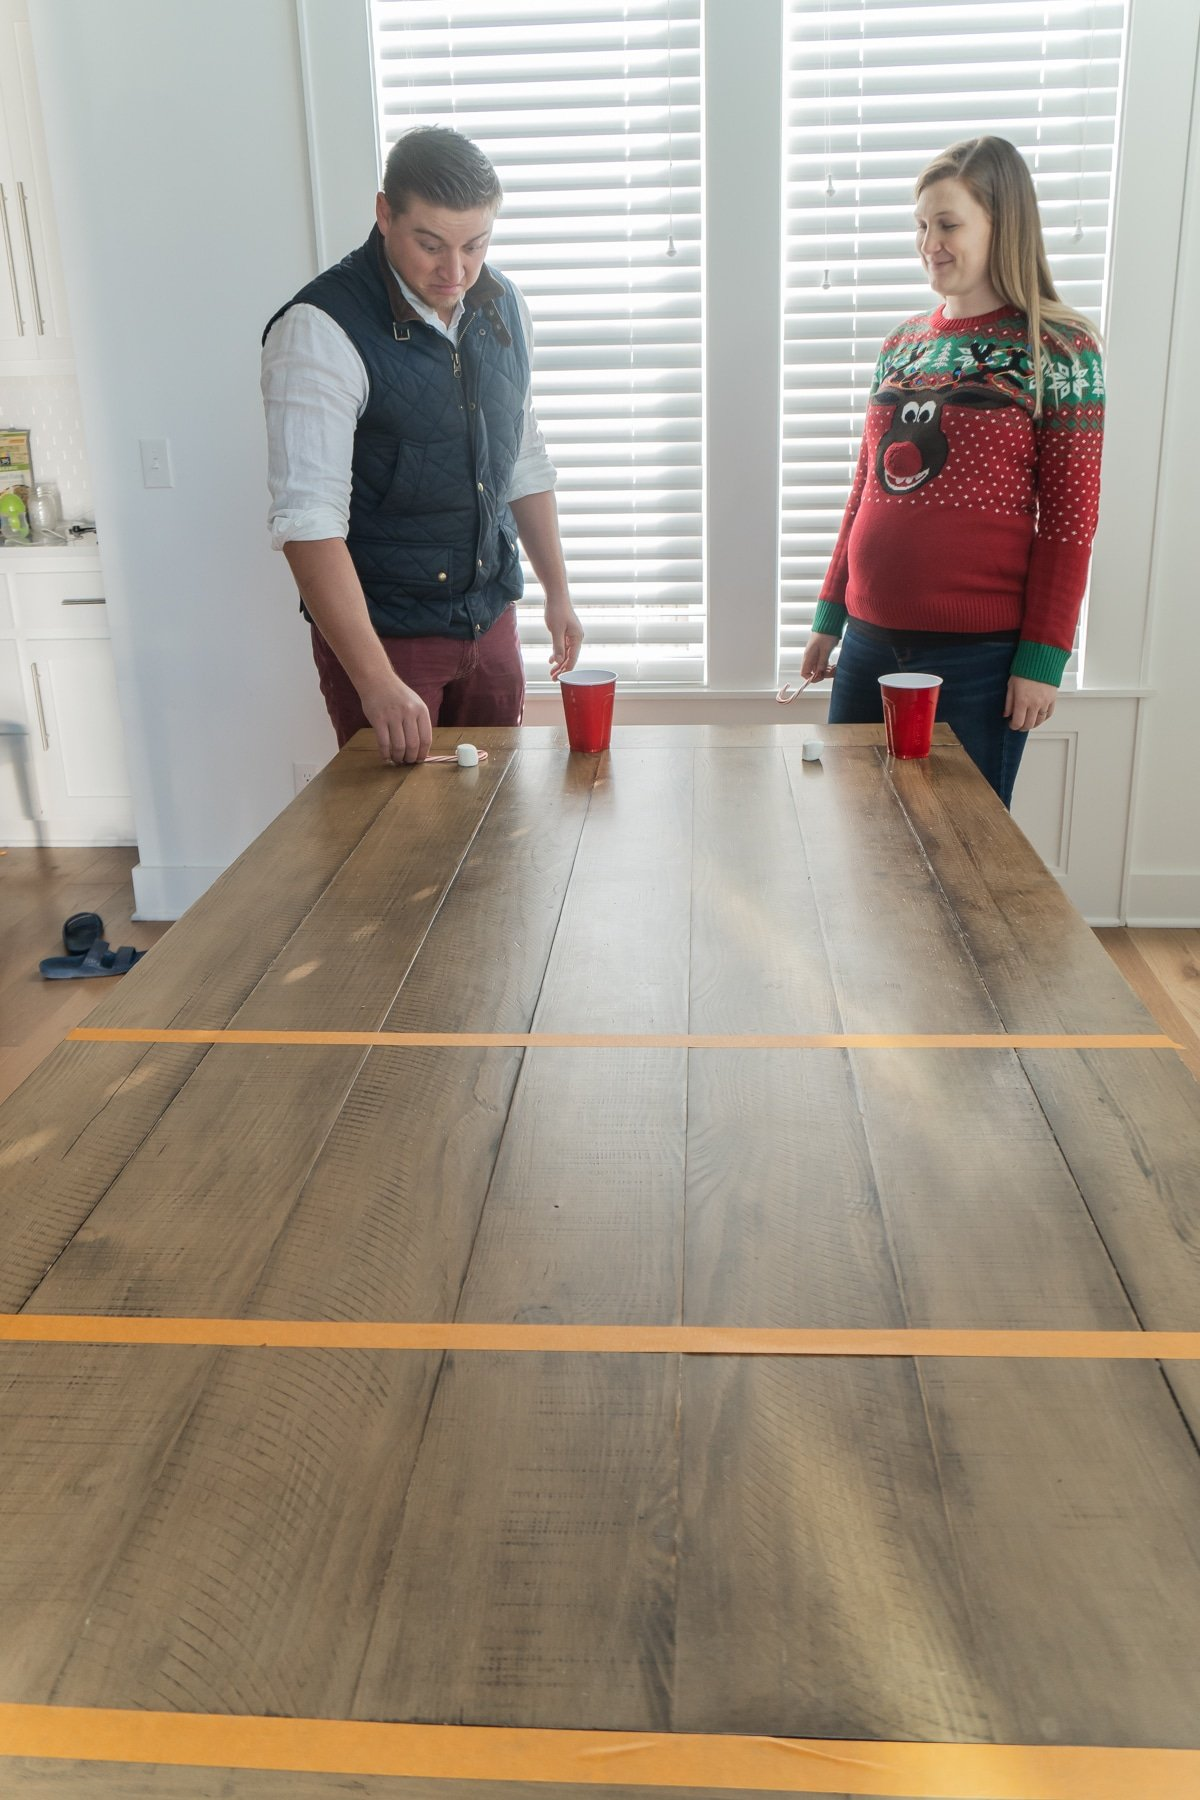 Two adults standing at the end of a table